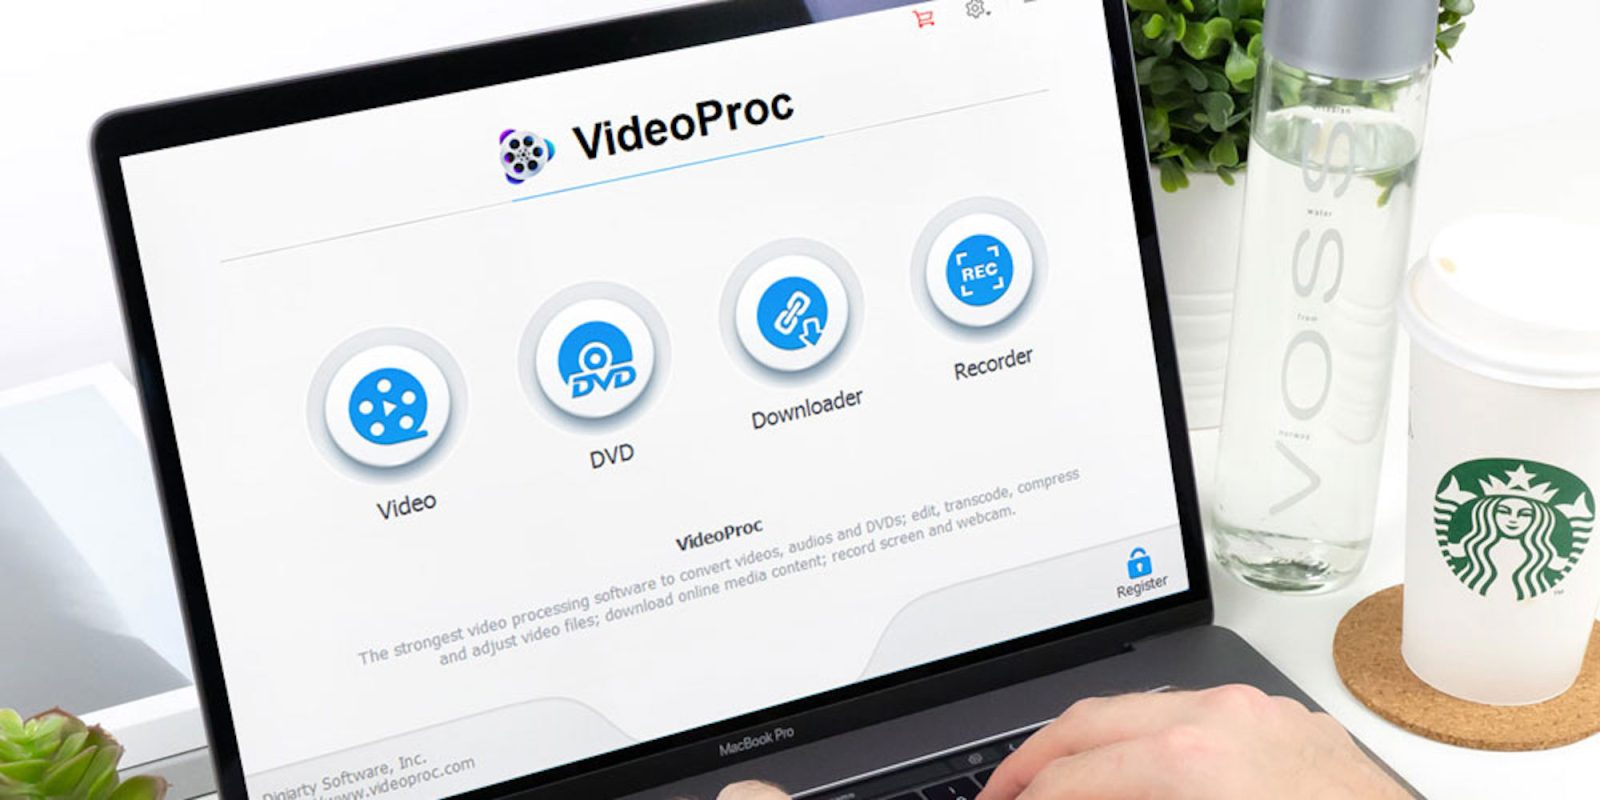 Edit and convert 4K videos at blazing speed with VideoProc, now $20 (Orig. $79)